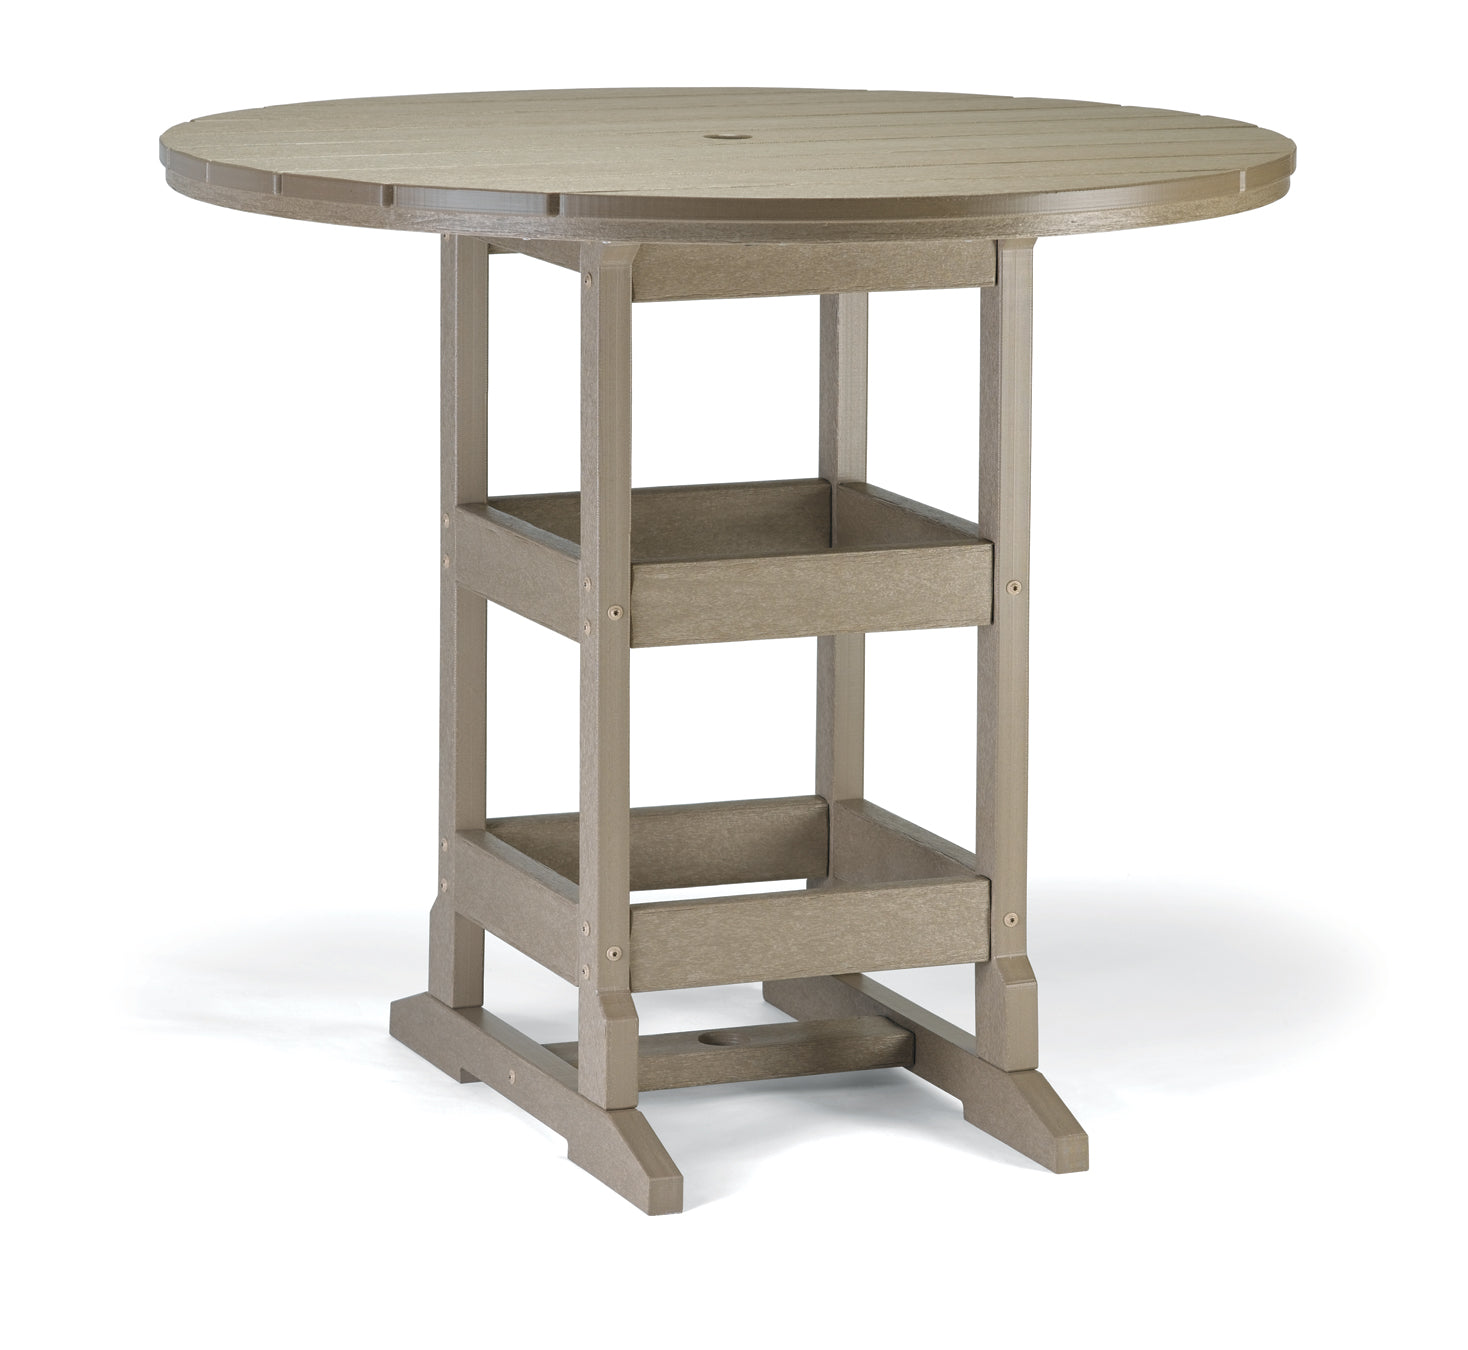 "Breezesta 48"" round bar table"